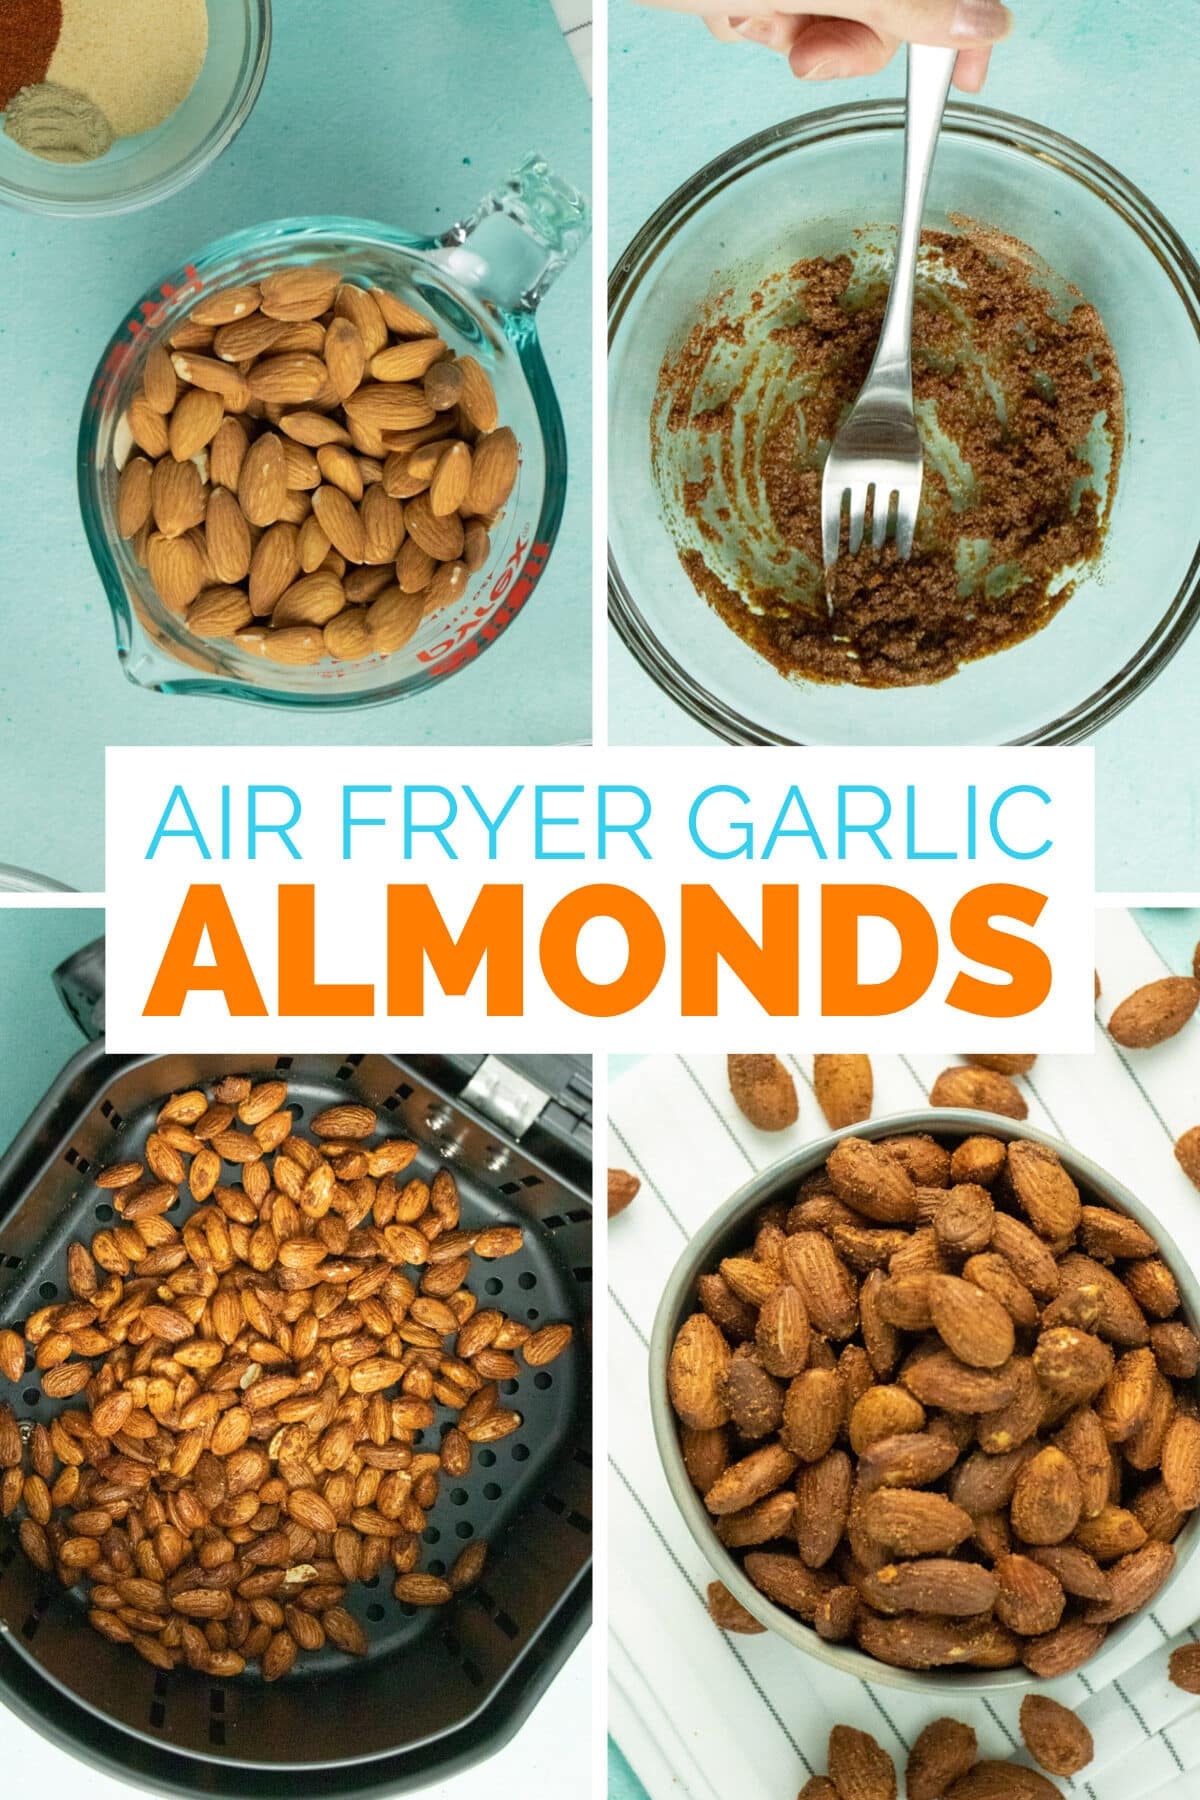 image collage of air fryer almond ingredients on a table, the garlic paste in the mixing bowl, uncooked almonds in the air fryer basket, and the cooked almonds in a serving dish